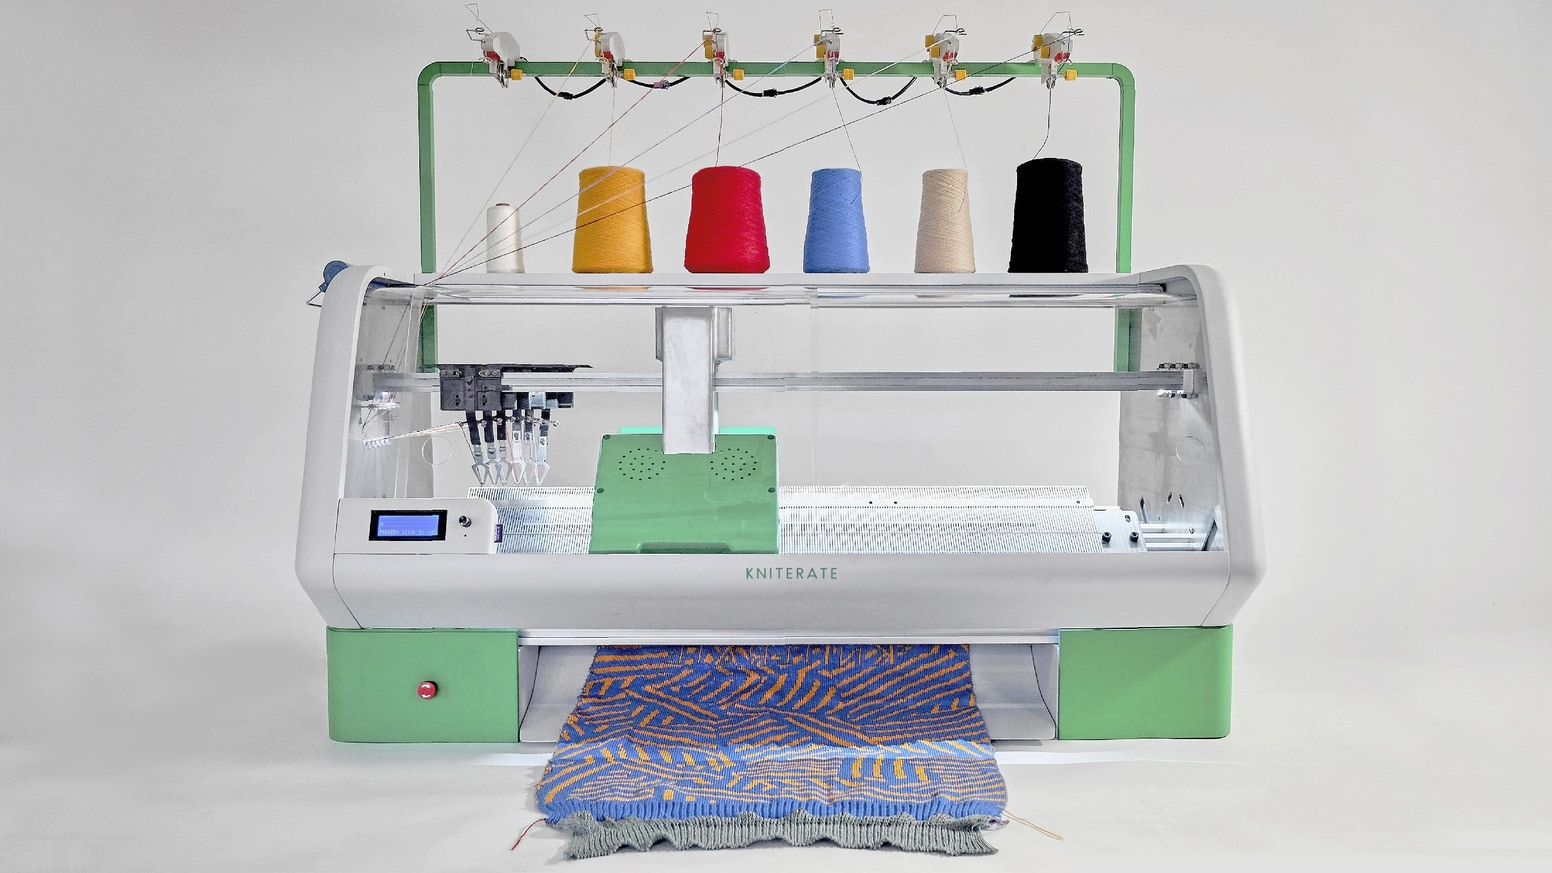 Knitting Machine For Sale South Africa : Kniterate the digital knitting machine by